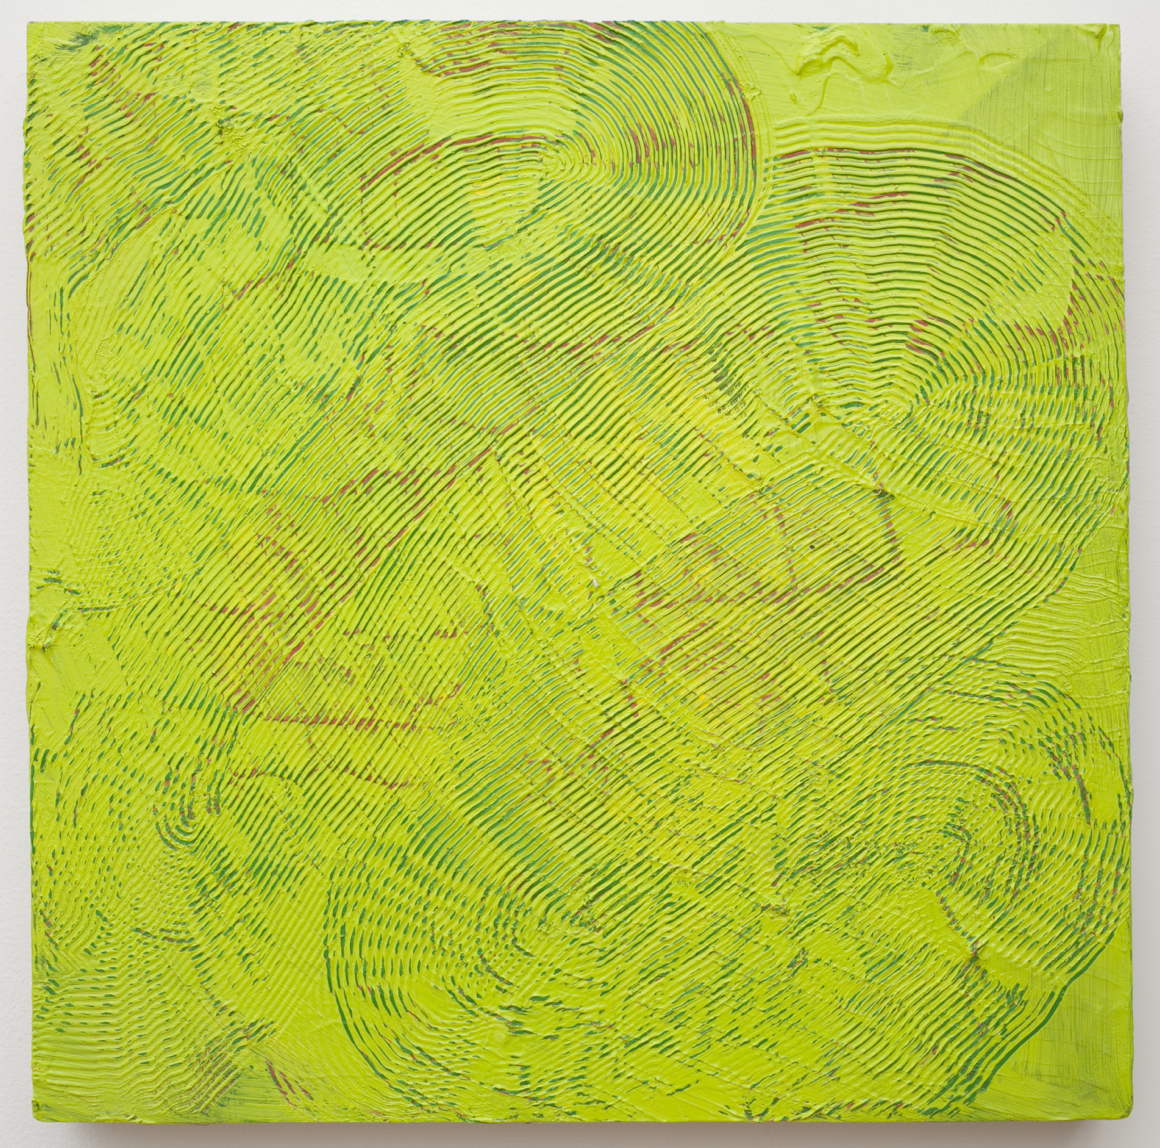 <p><em>Green</em><span class='media'>acrylic and spray paint on panel</span>15.5 x 15.5 in  (39.4 x 39.4 cm)<br>2014<br><a class='inquire' href='mailto:info@gildargallery.com?subject=Artwork Inquiry ABAT0009&body=I am interested in finding out more about Green by Adam Bateman'>Inquire</a></p>